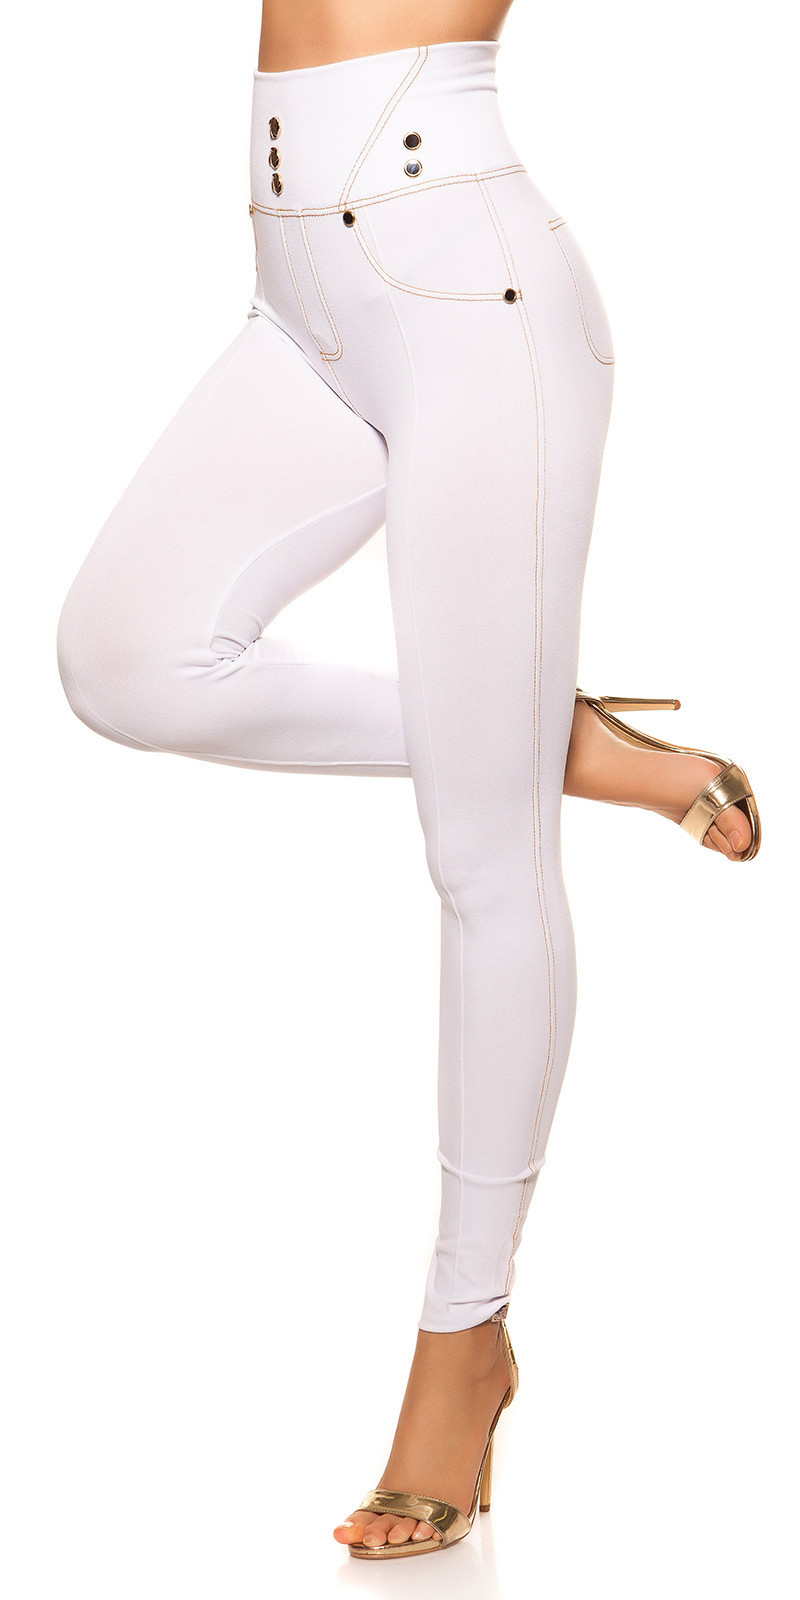 Sexy Jeanslook-Leggings with buttons White